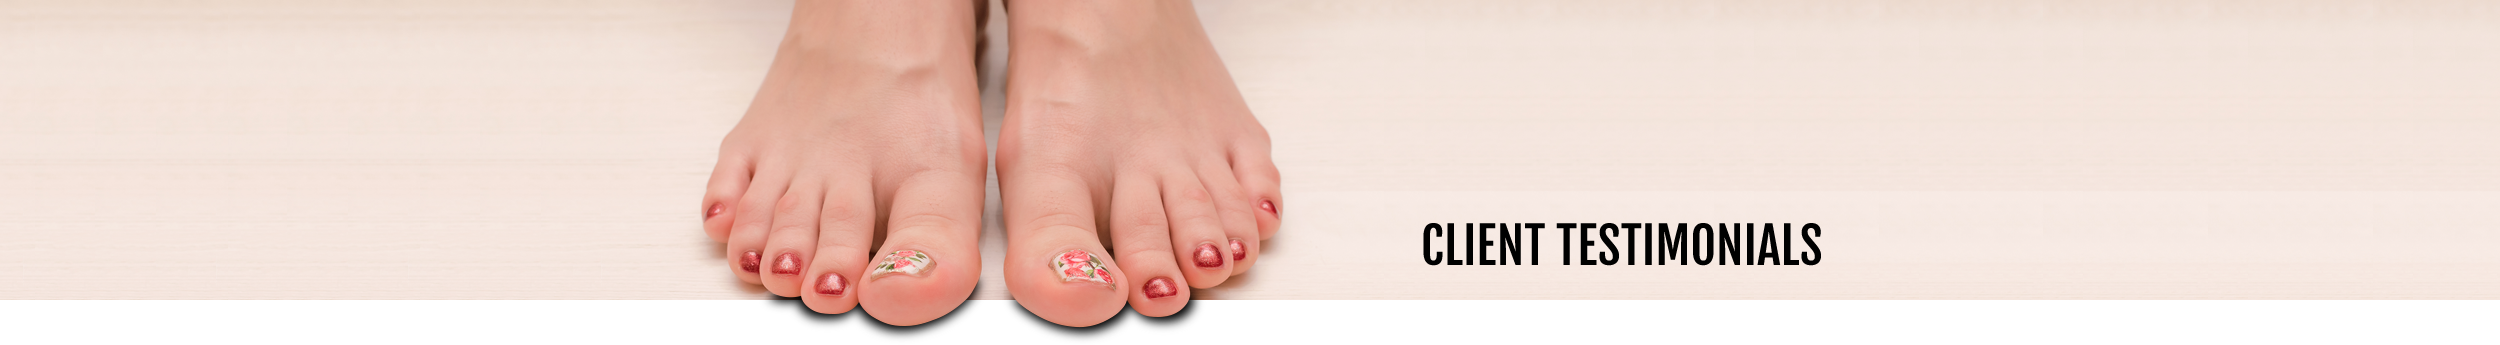 Client review header for the Walk IN Foot Clinic in central London